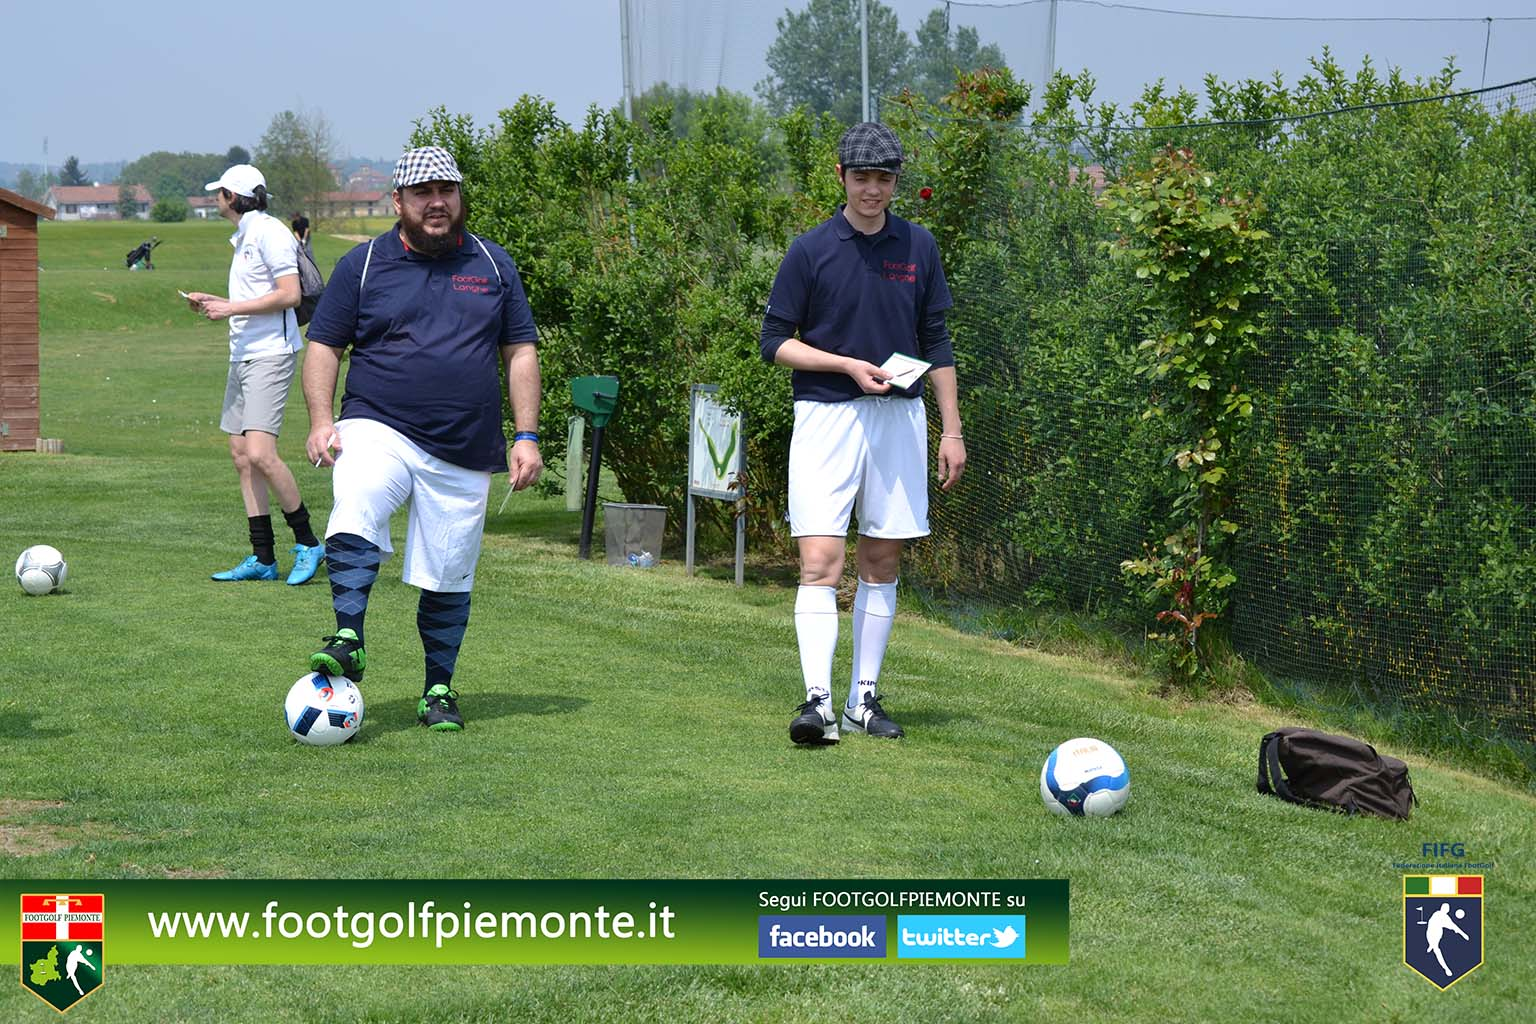 FOTO 9 Regions' Cup Footgolf Piemonte 2016 Golf Città di Asti (At) 30apr16-69